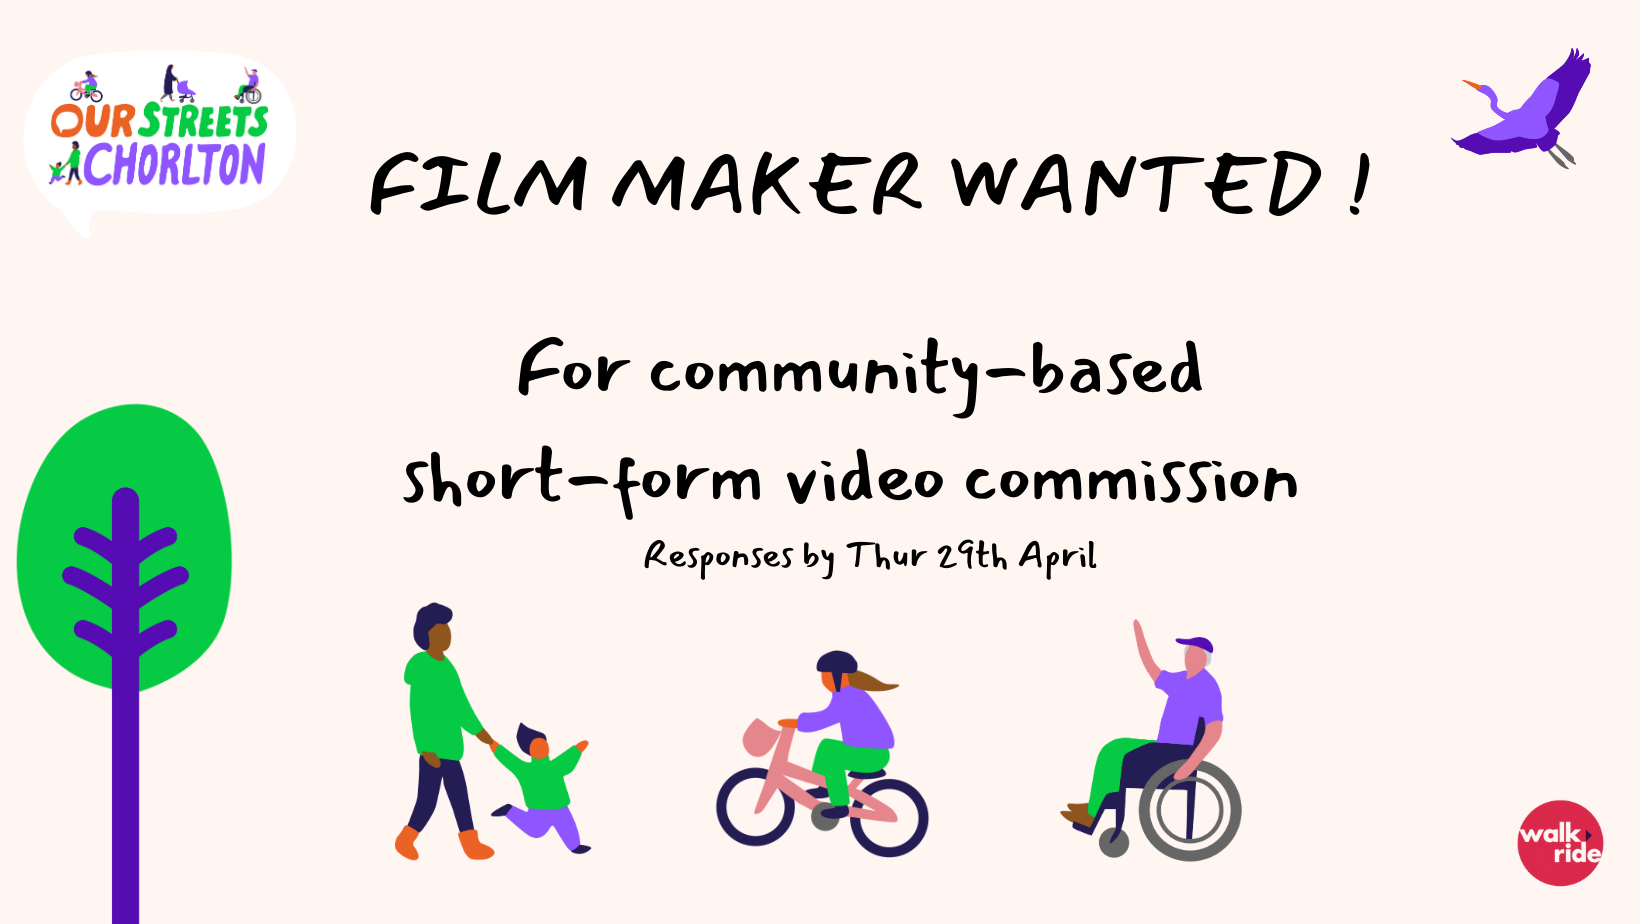 SHORT-FORM FILM / VIDEOGRAPHERS WANTED FOR COMMUNITY COMMISSION